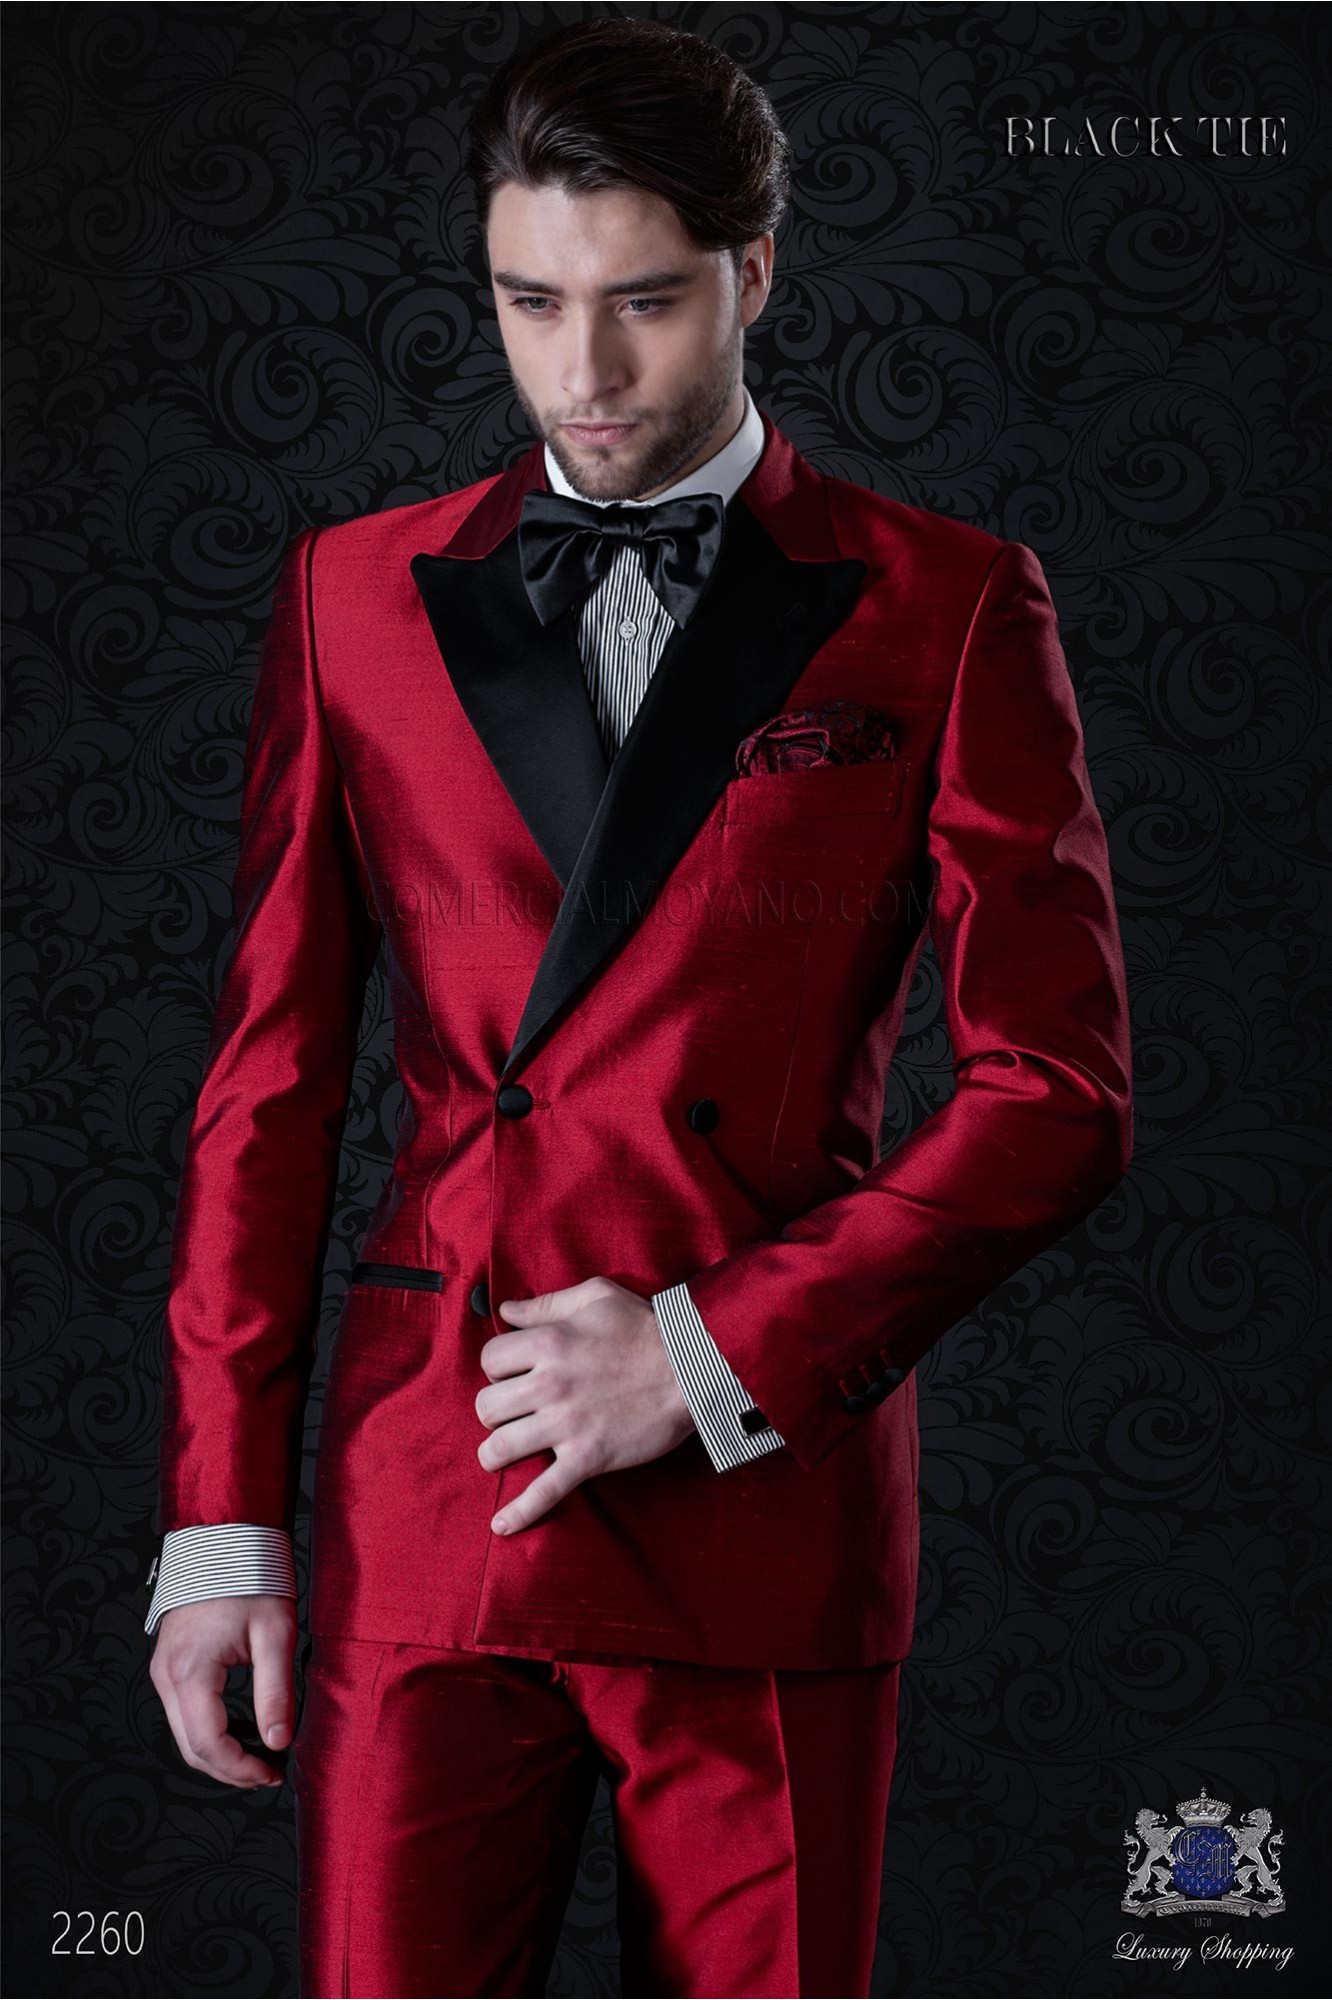 Tuxedo double breasted red shantung with satin lapels. Shantung silk mix fabric